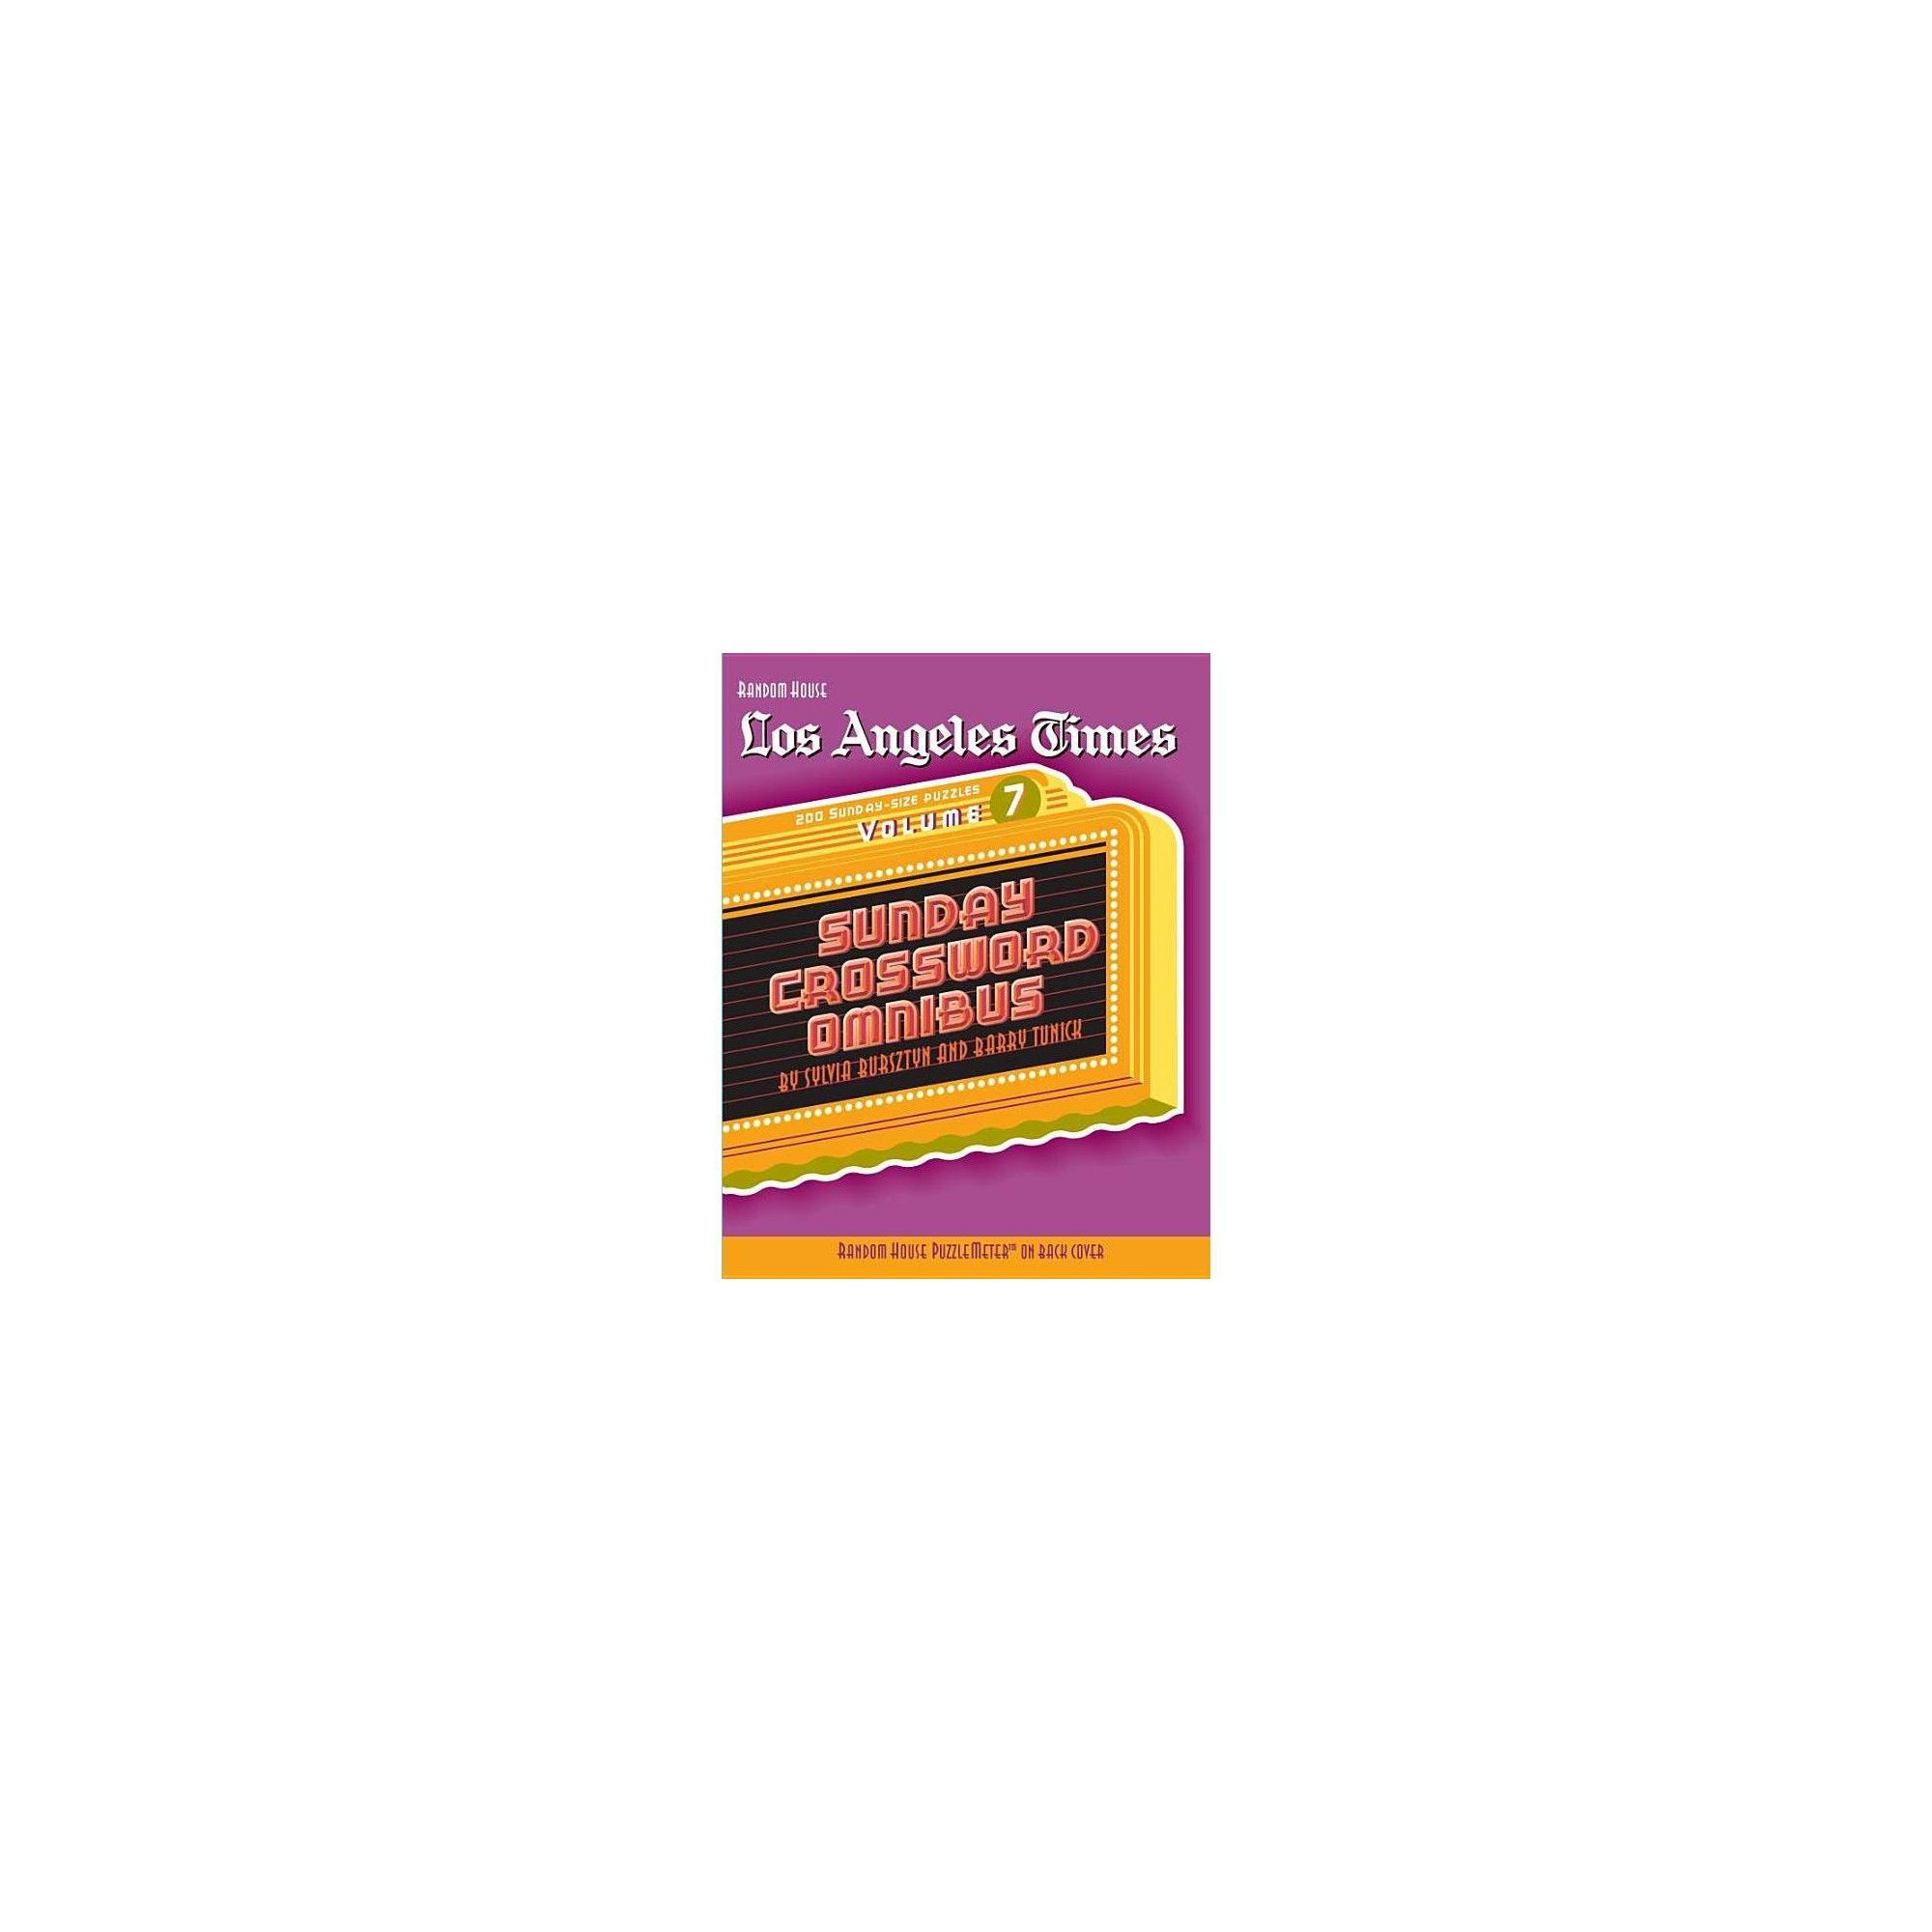 Los Angeles Times Sunday Crossword Omnibus Volume 7 By Barry Tunick Sylvia Bursztyn Paperback Crossword Puzzles For Kids Puzzle Solver